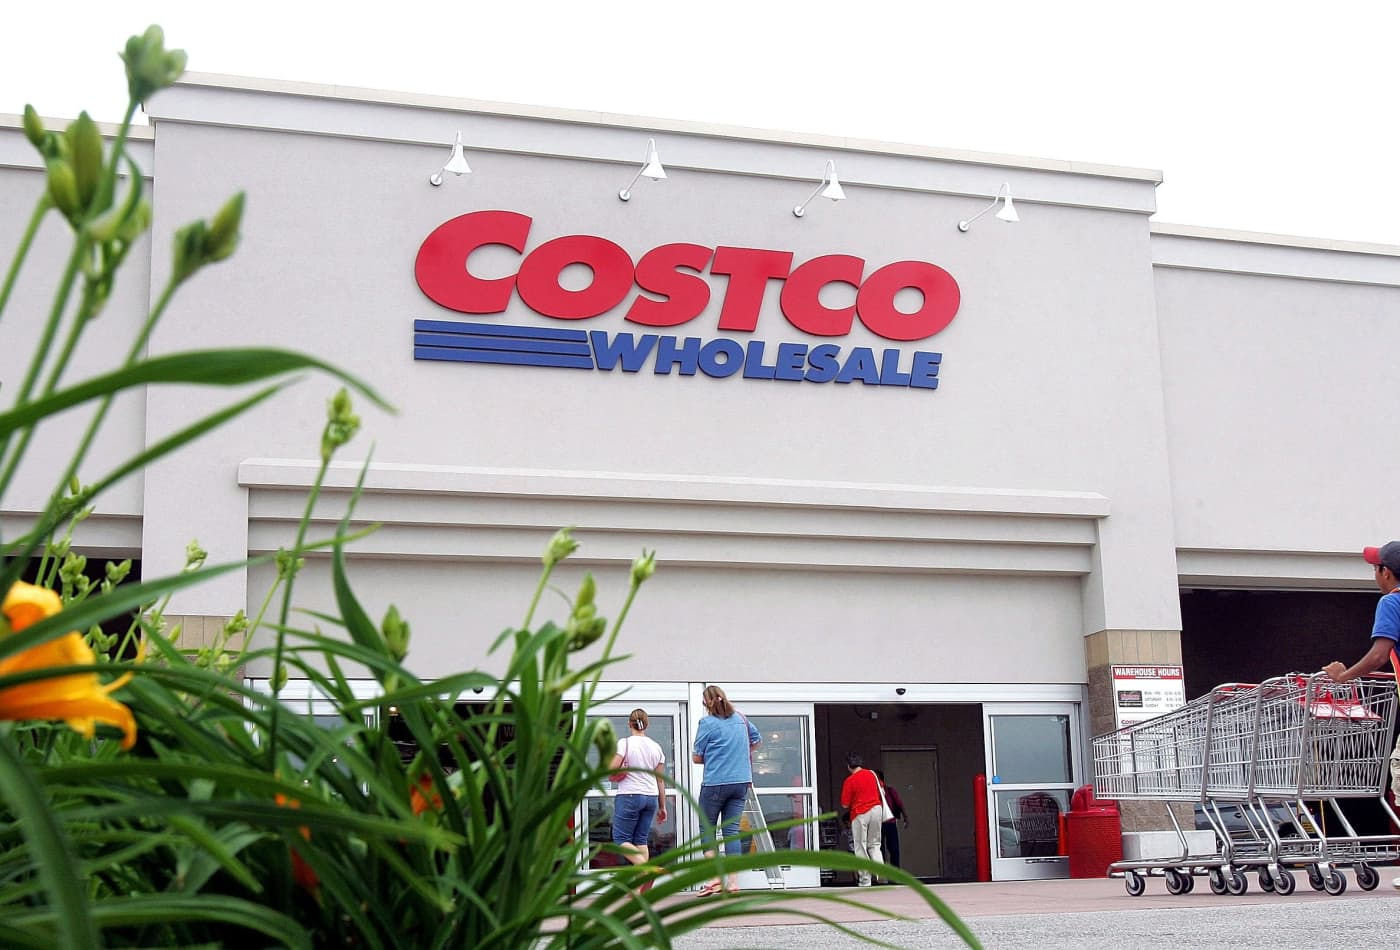 Costco Anywhere Visa Card review: Is it the best card for Costco?